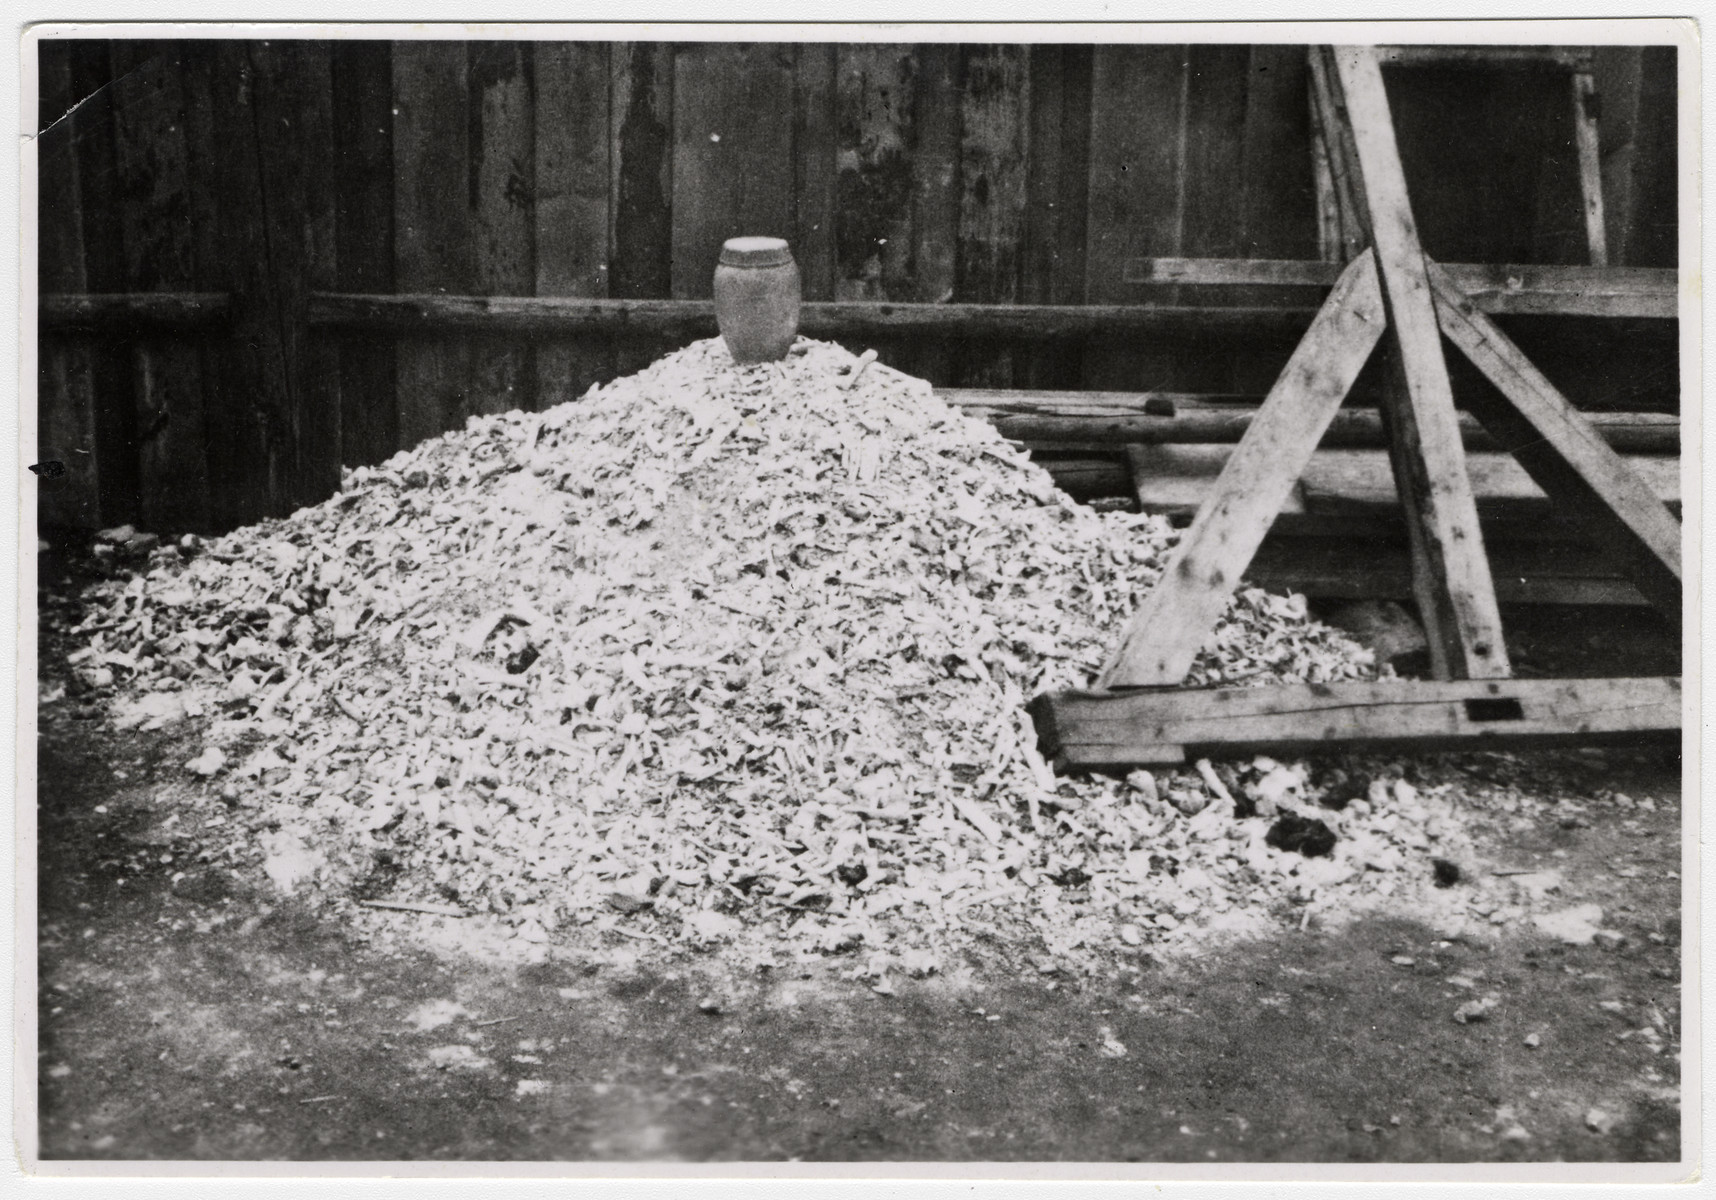 View of a pile of human remains found in Buchenwald concentration camp.